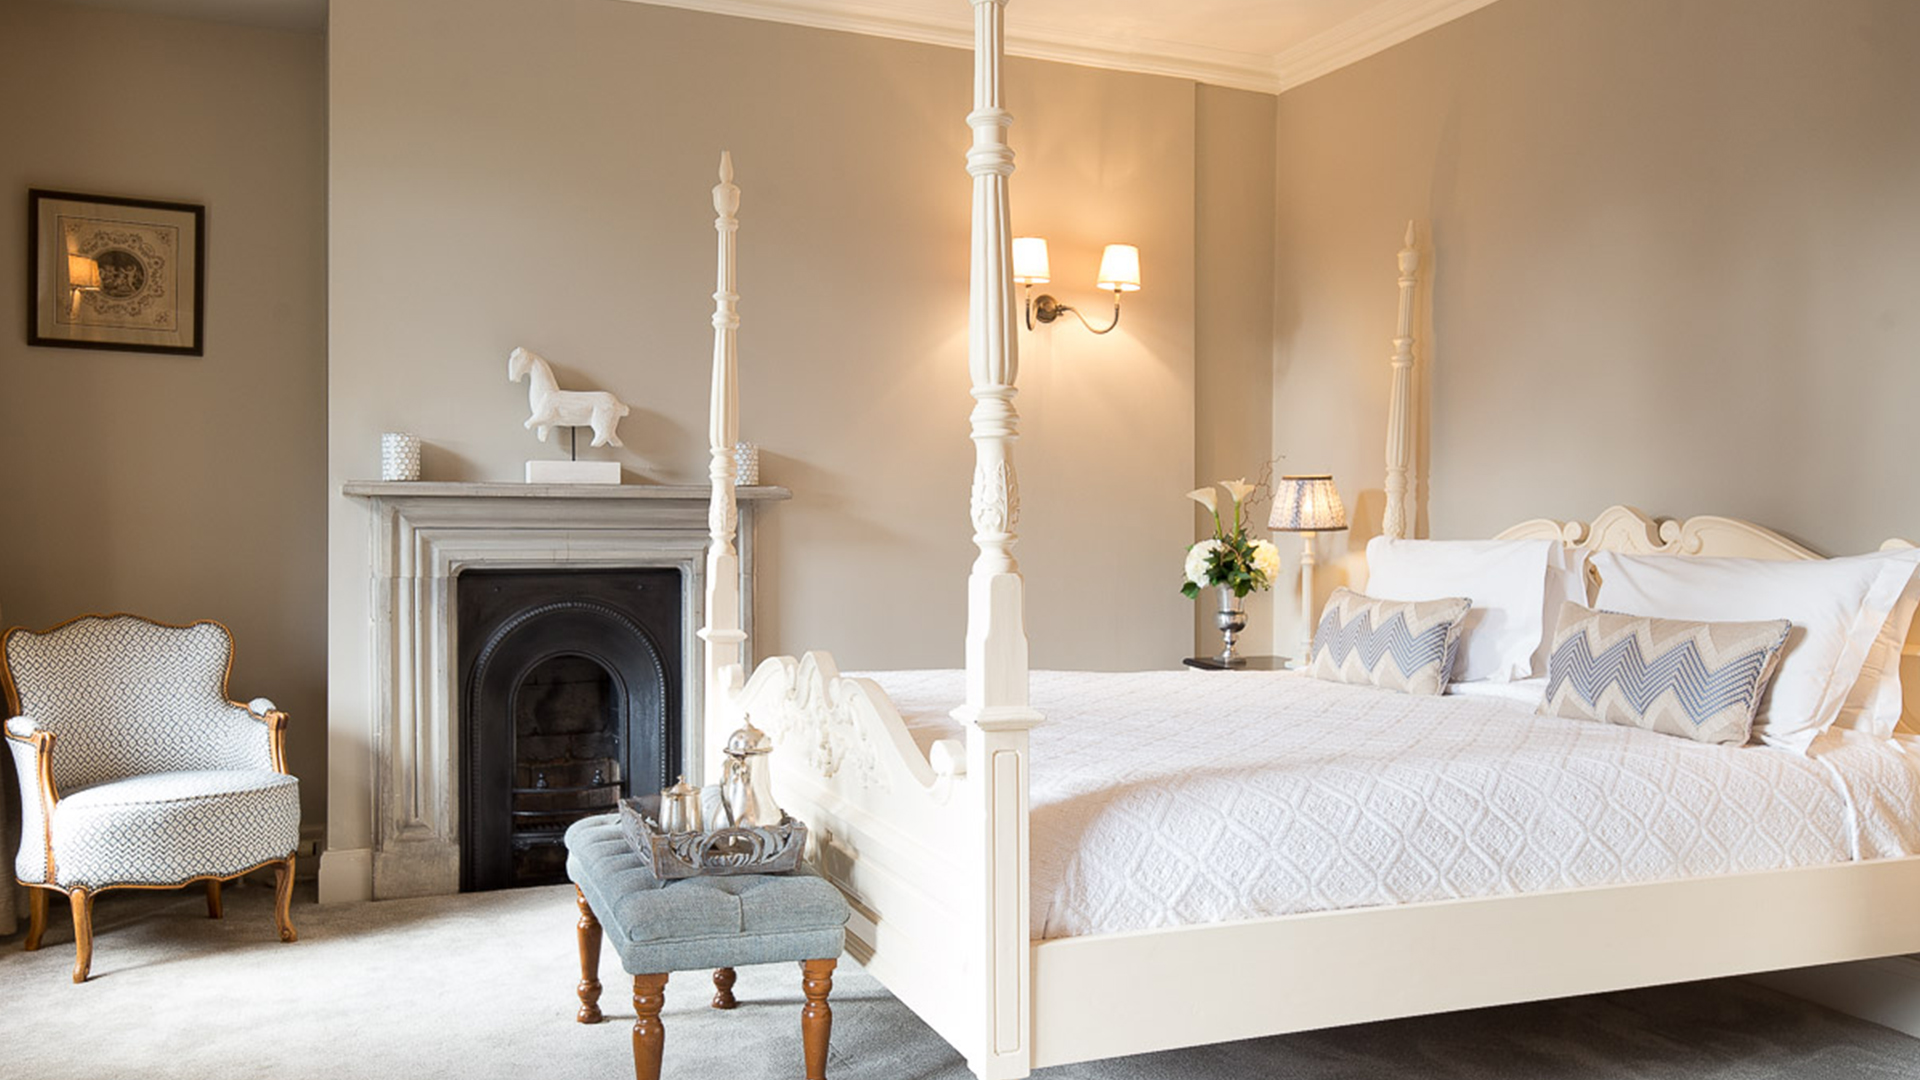 Luxury boutique hotel north wales soughton hall hotel for Luxury boutique hotels uk